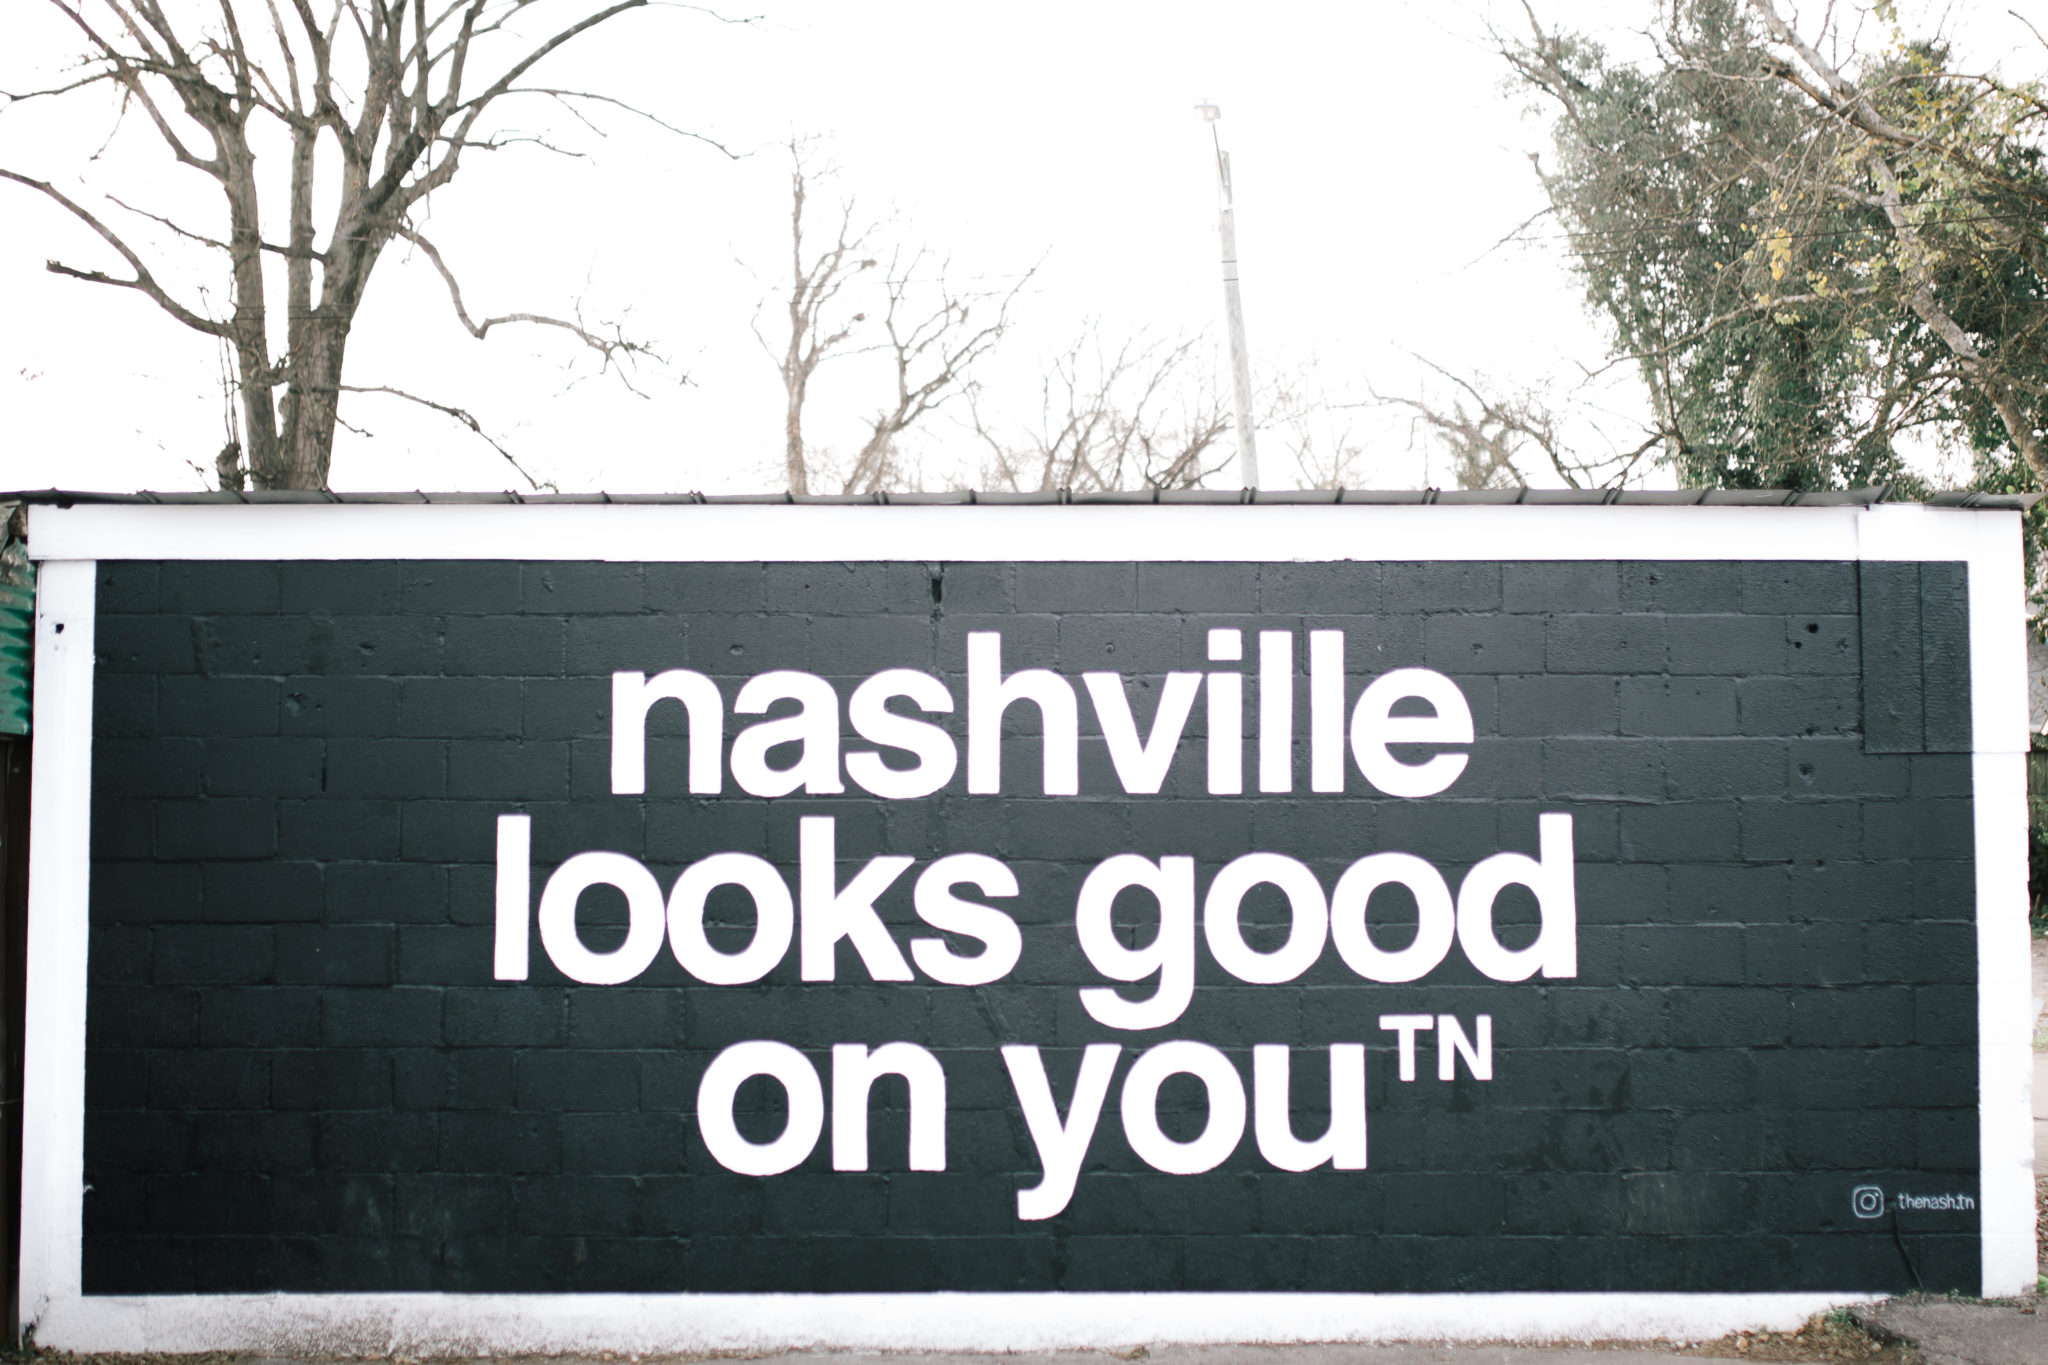 best murals and photo spots in Nashville